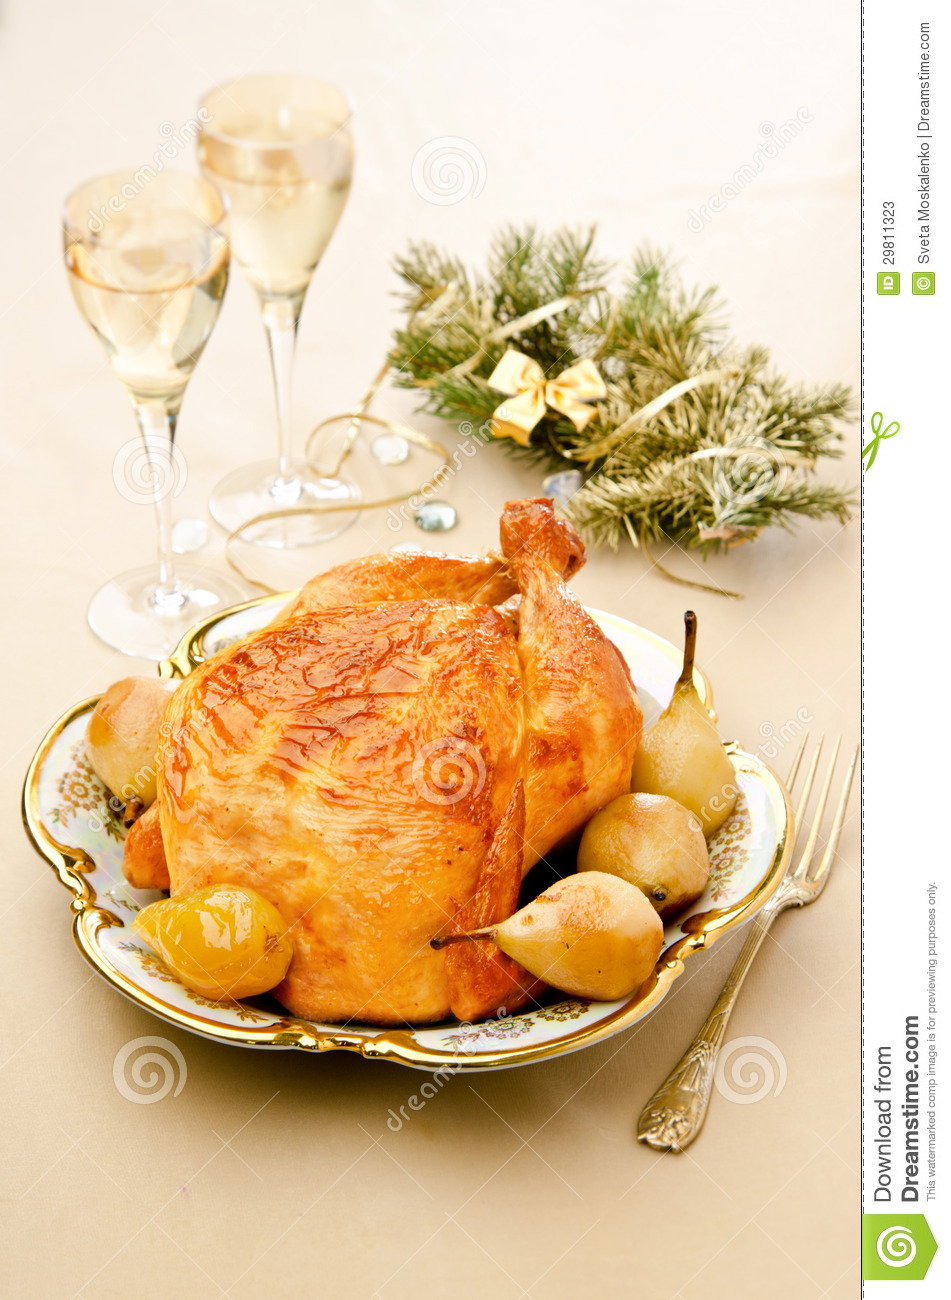 Baked Chicken With Pears Stock Photos - Image: 29811323